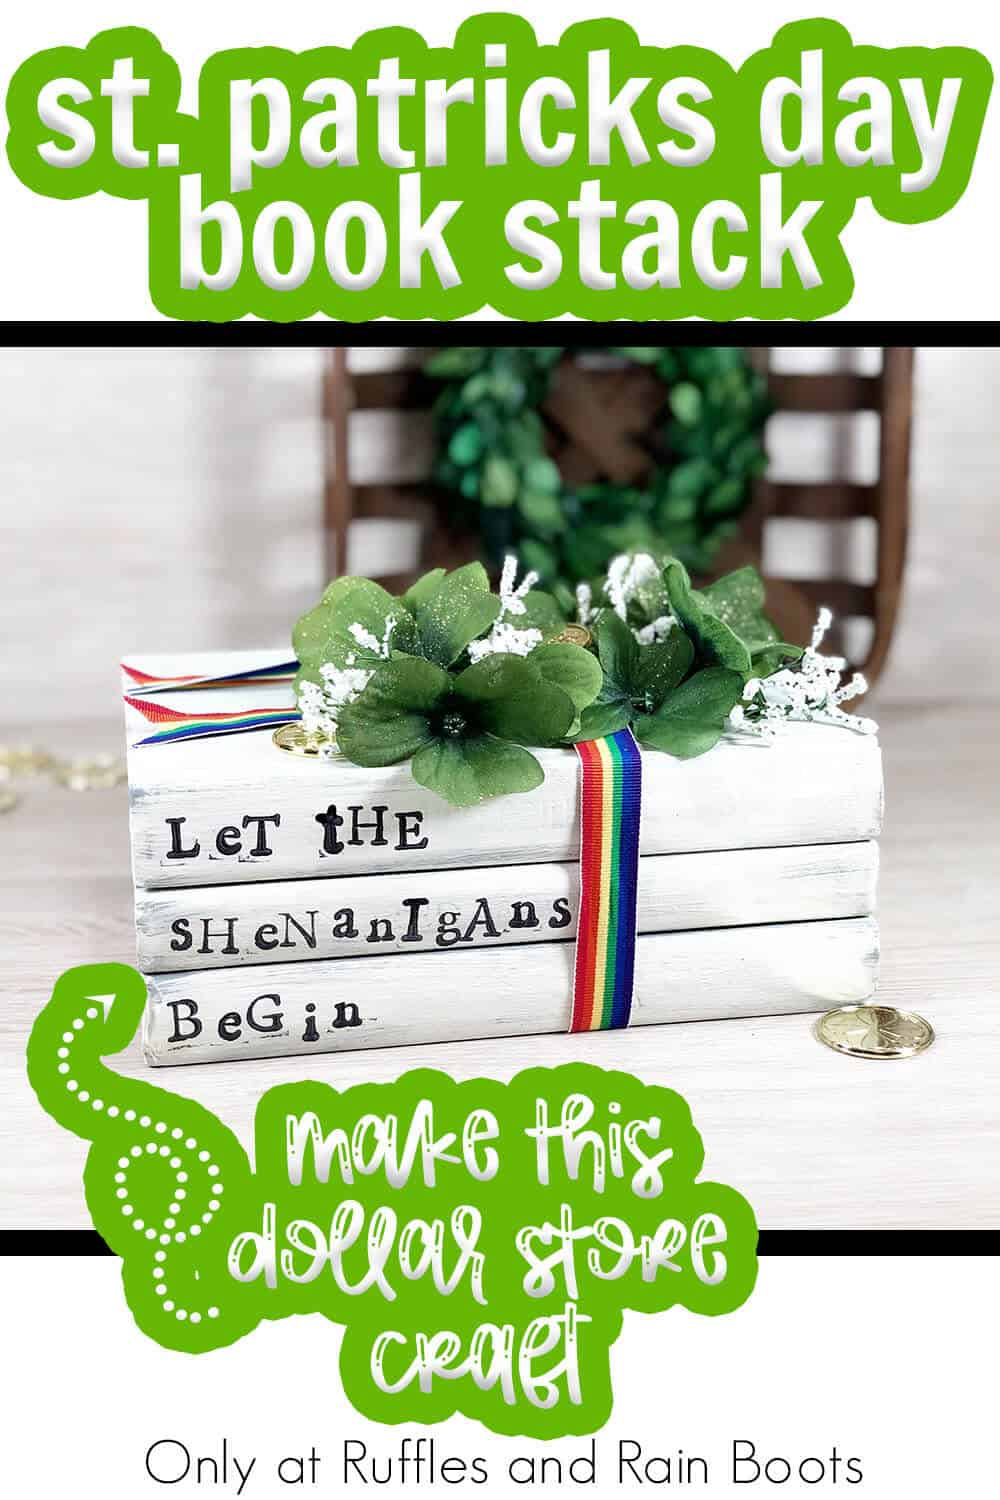 st patricks day farmhouse book stack dollar store craft with text which reads st. patrick's day book stack make this dollar store craft